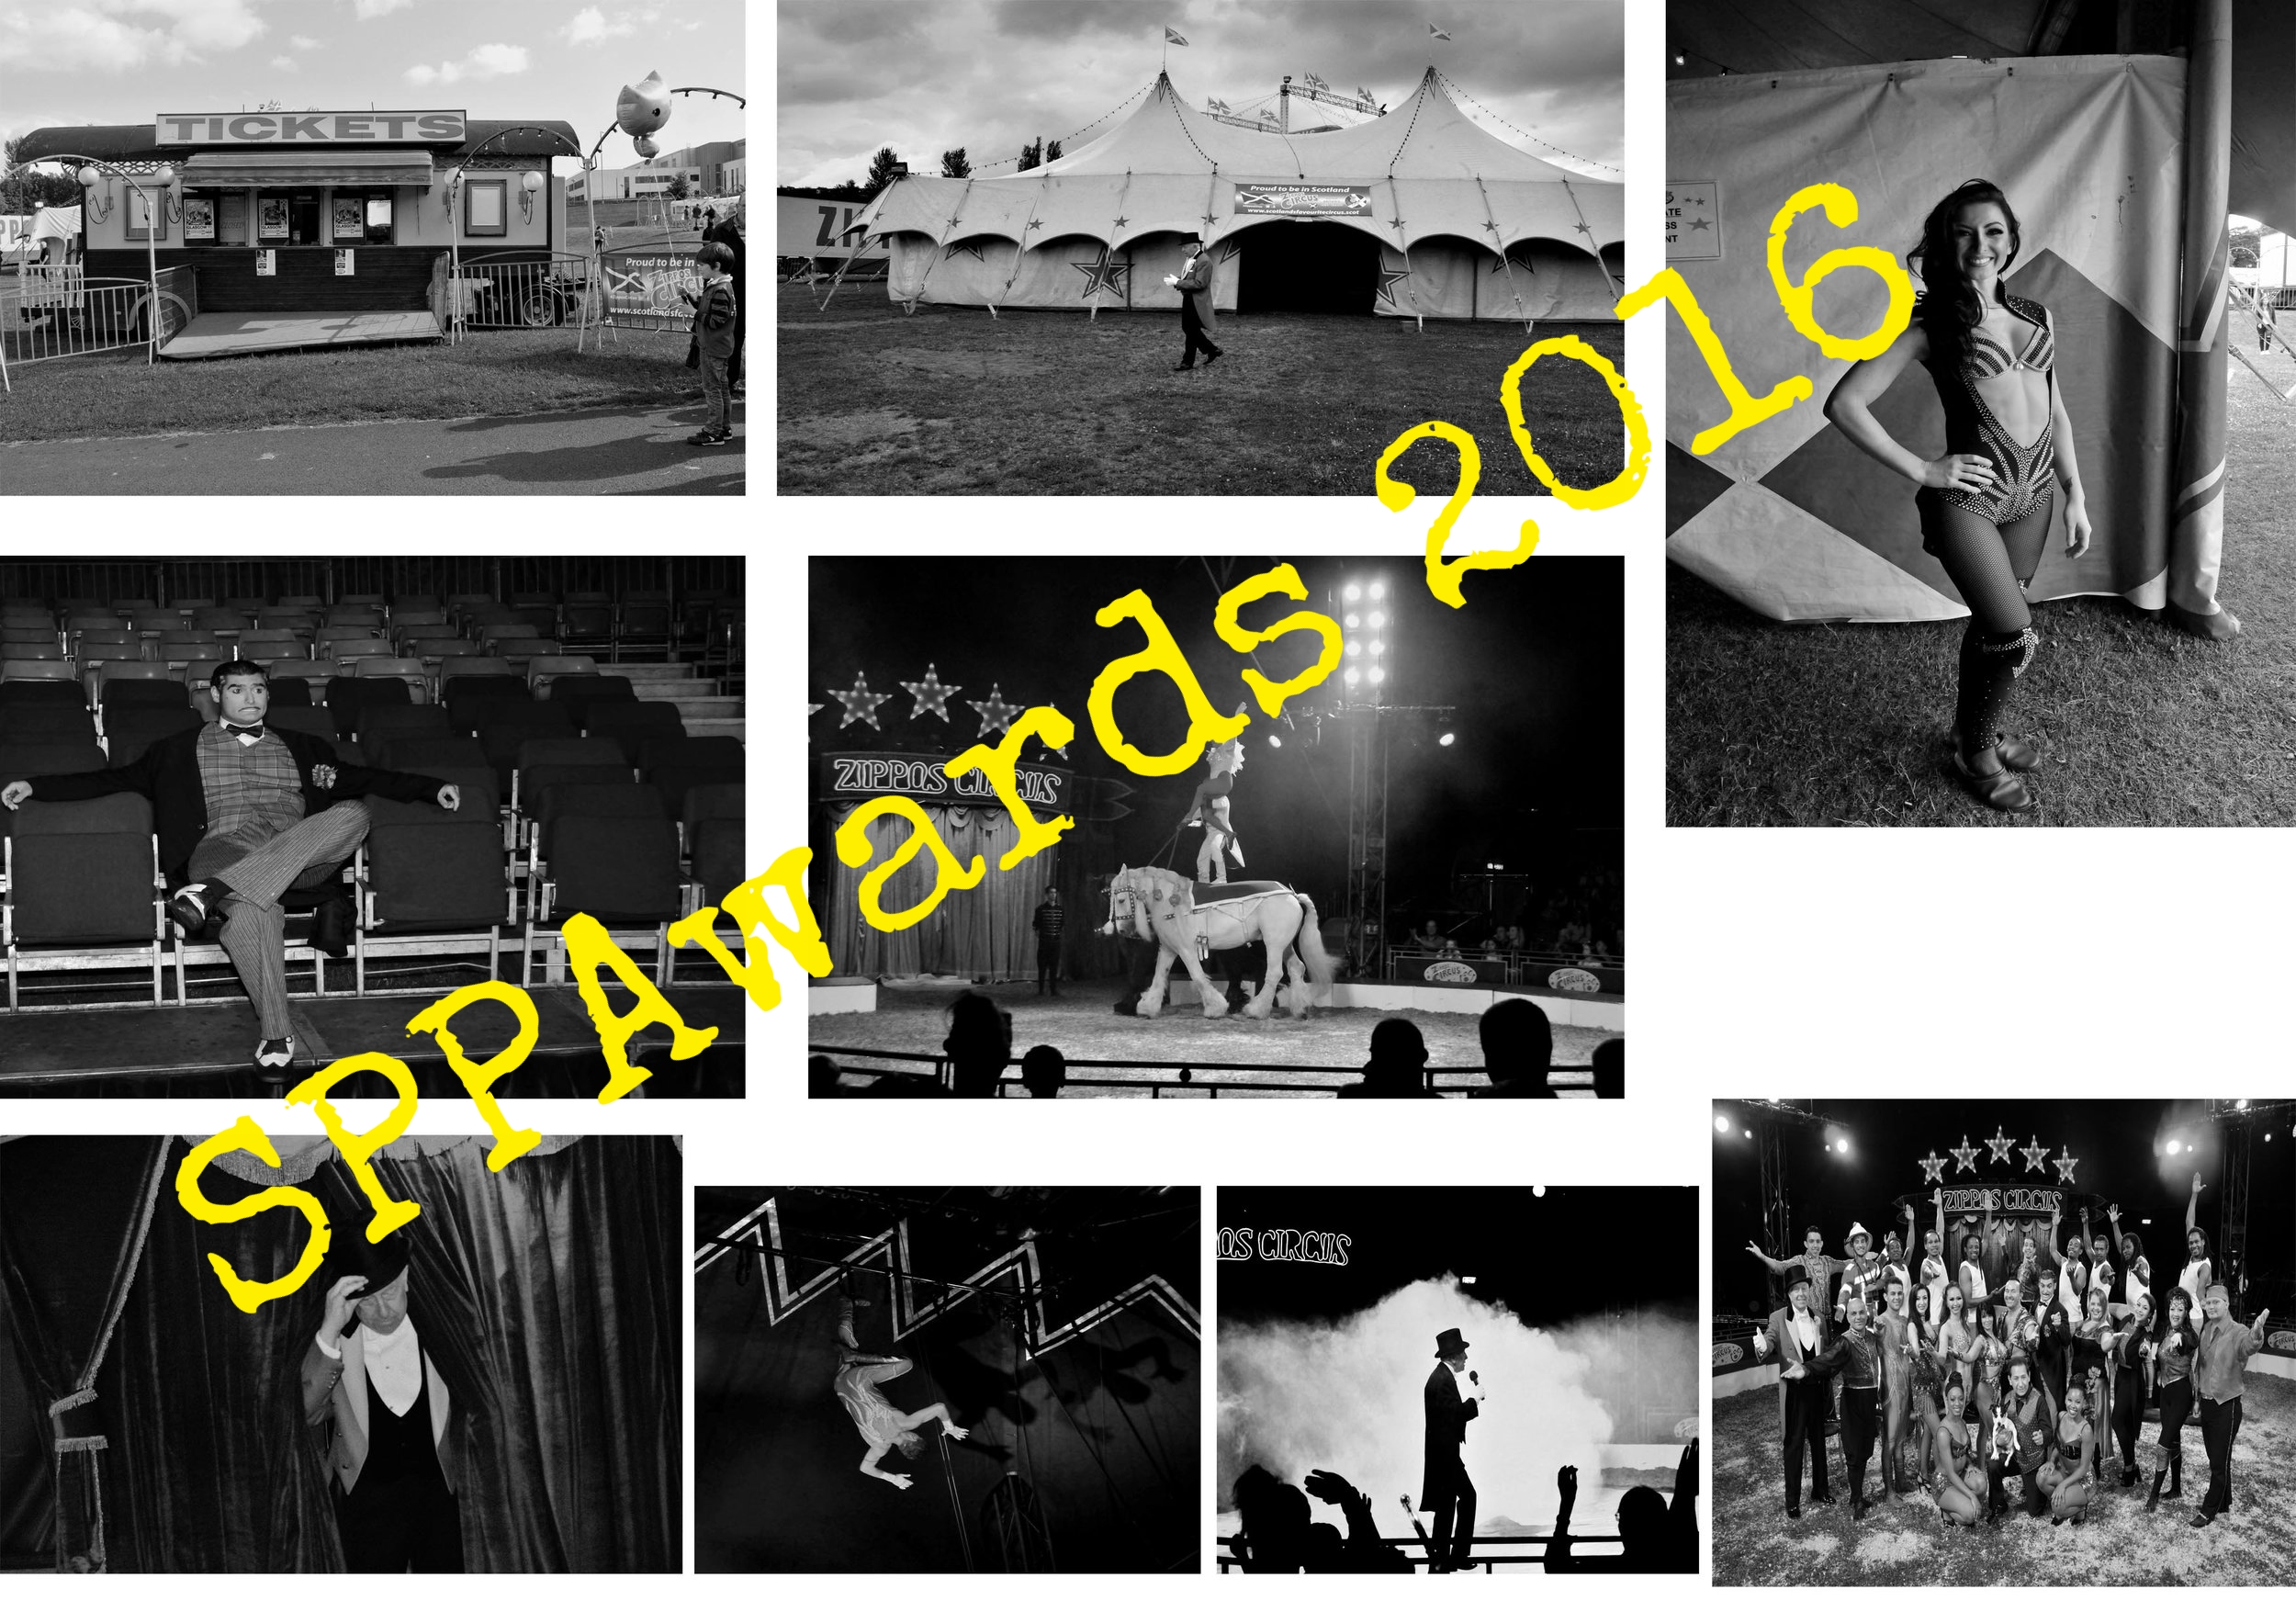 REPORTAGE 6 THE CIRCUS .jpg